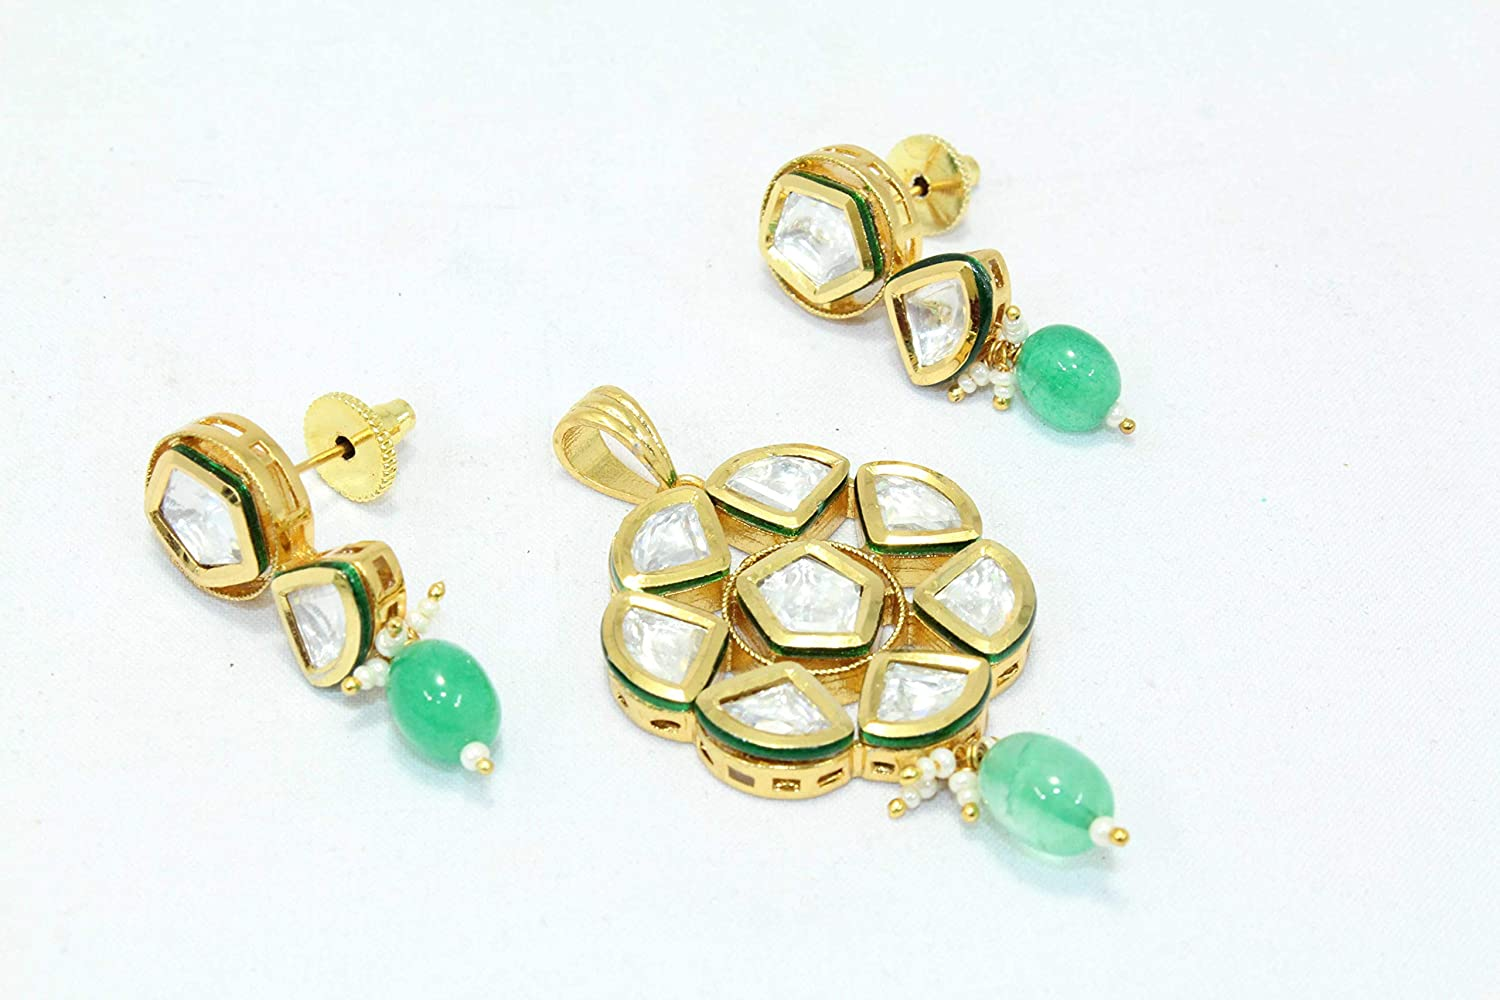 PH Artistic Fashion White Crystal Green Bead Stone Bridal Wedding Pendant Set Gold Plated